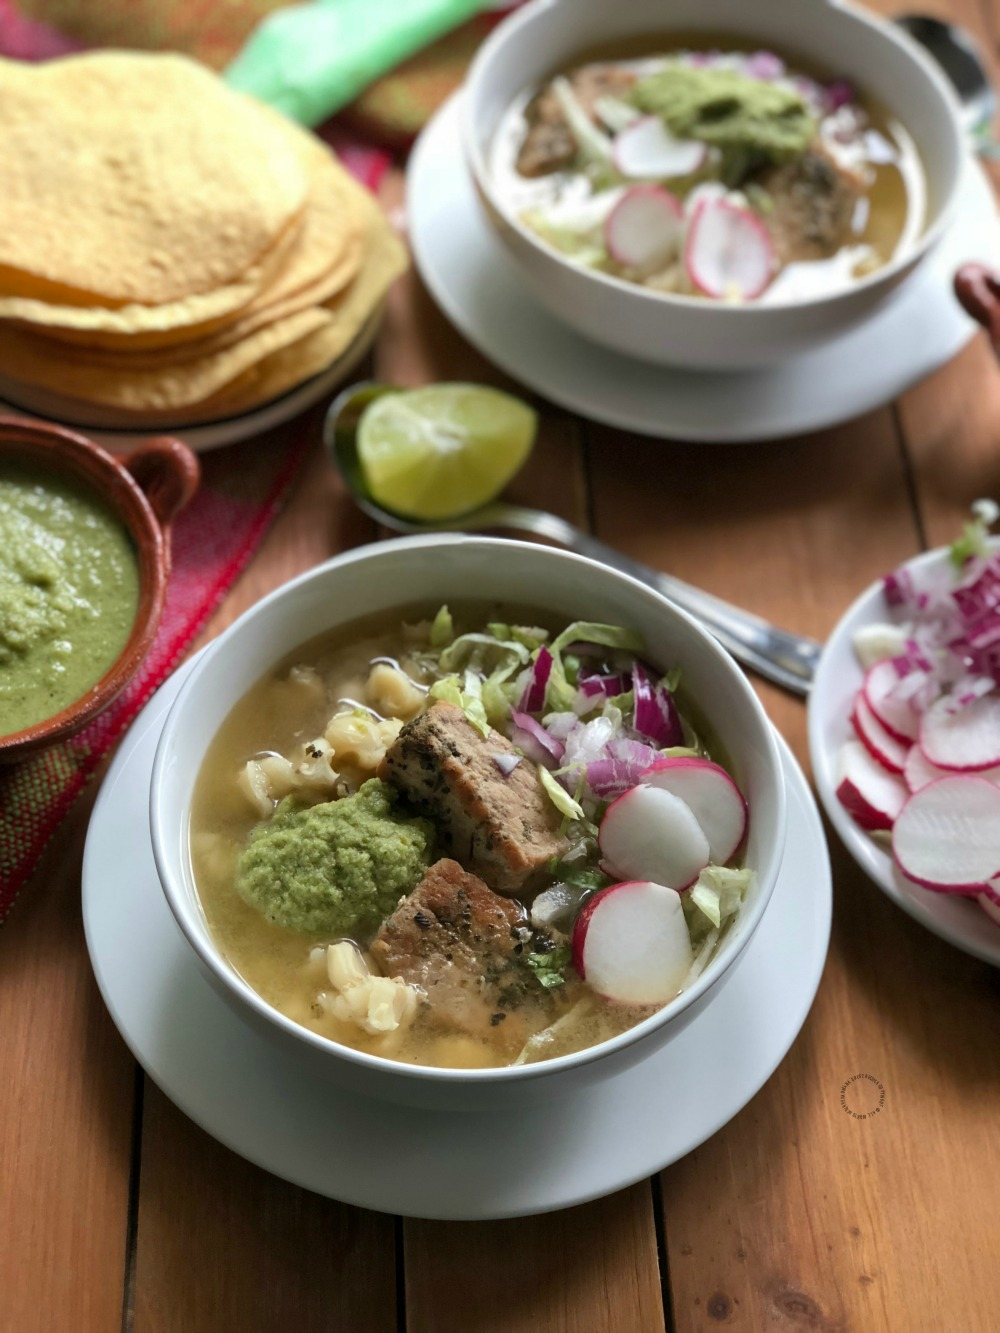 This holiday season enjoy an Instant Pot Green Pork Pozole